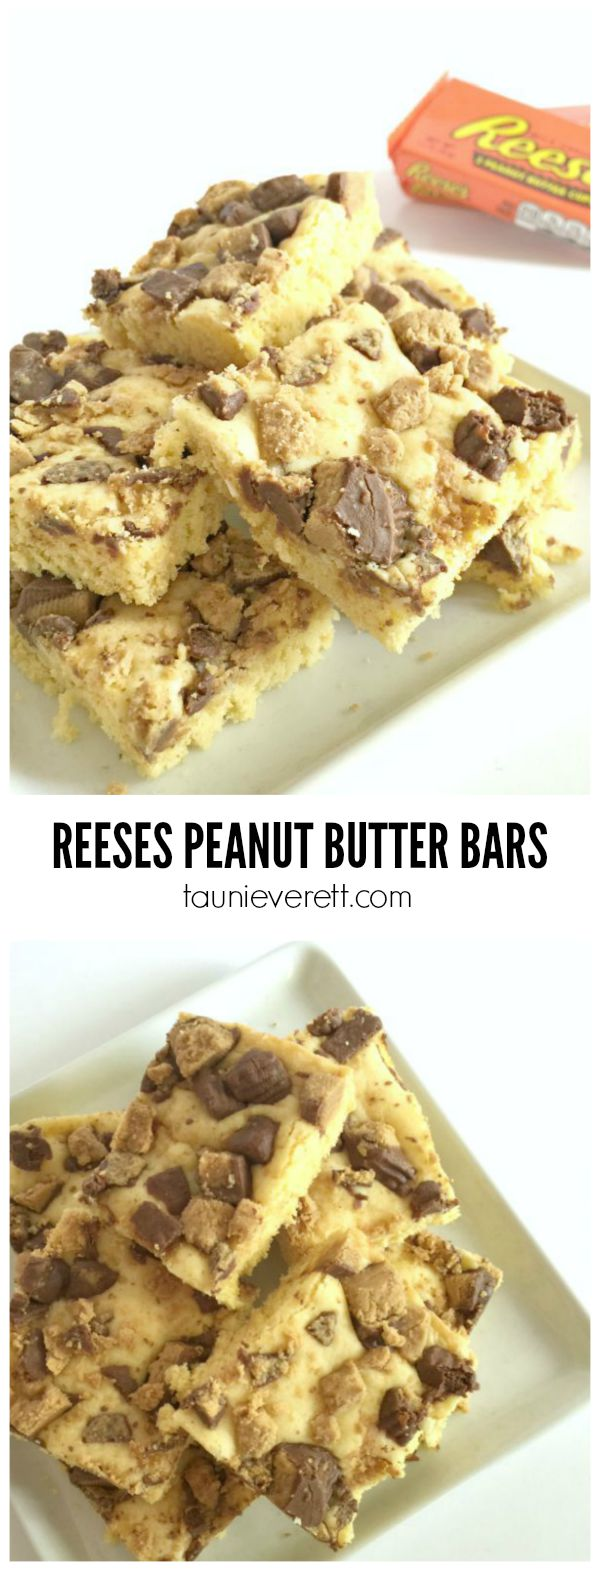 Reeses Peanut Butter Bars Recipe. This recipe is super-simple. Great for a last-minute treats or teaching beginning bakers.